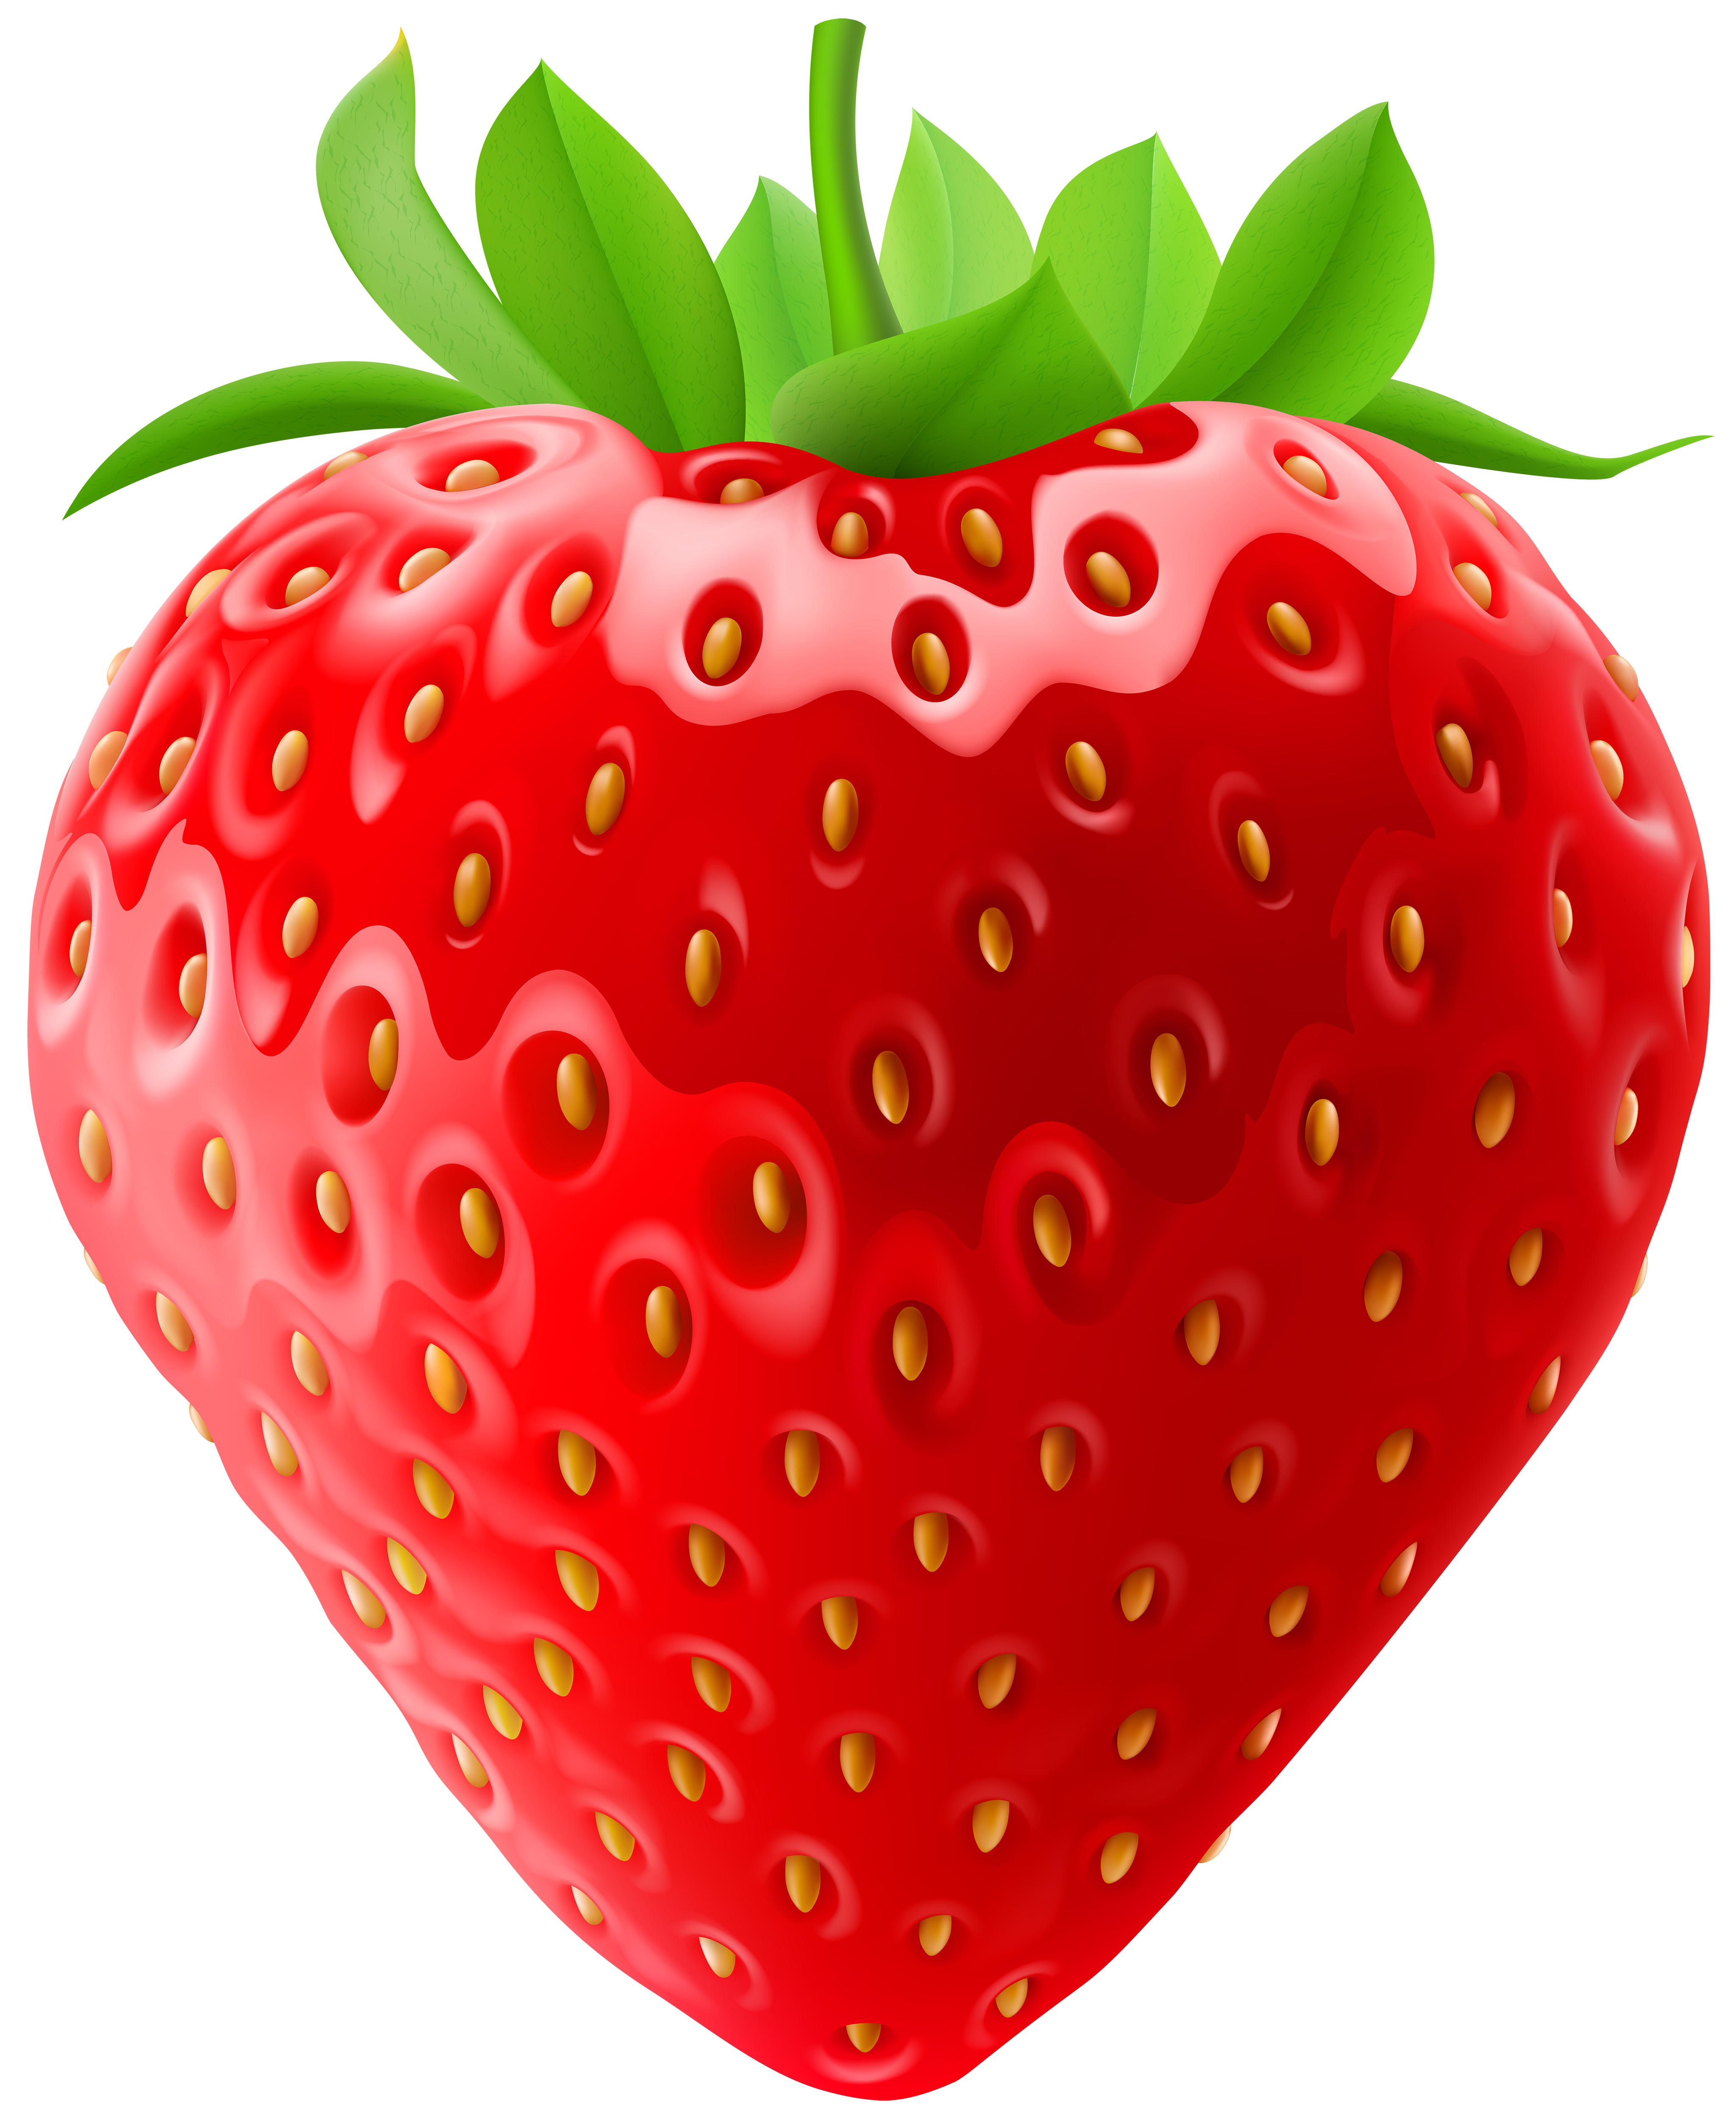 royalty free download Strawberry clip art png. Strawberries clipart food